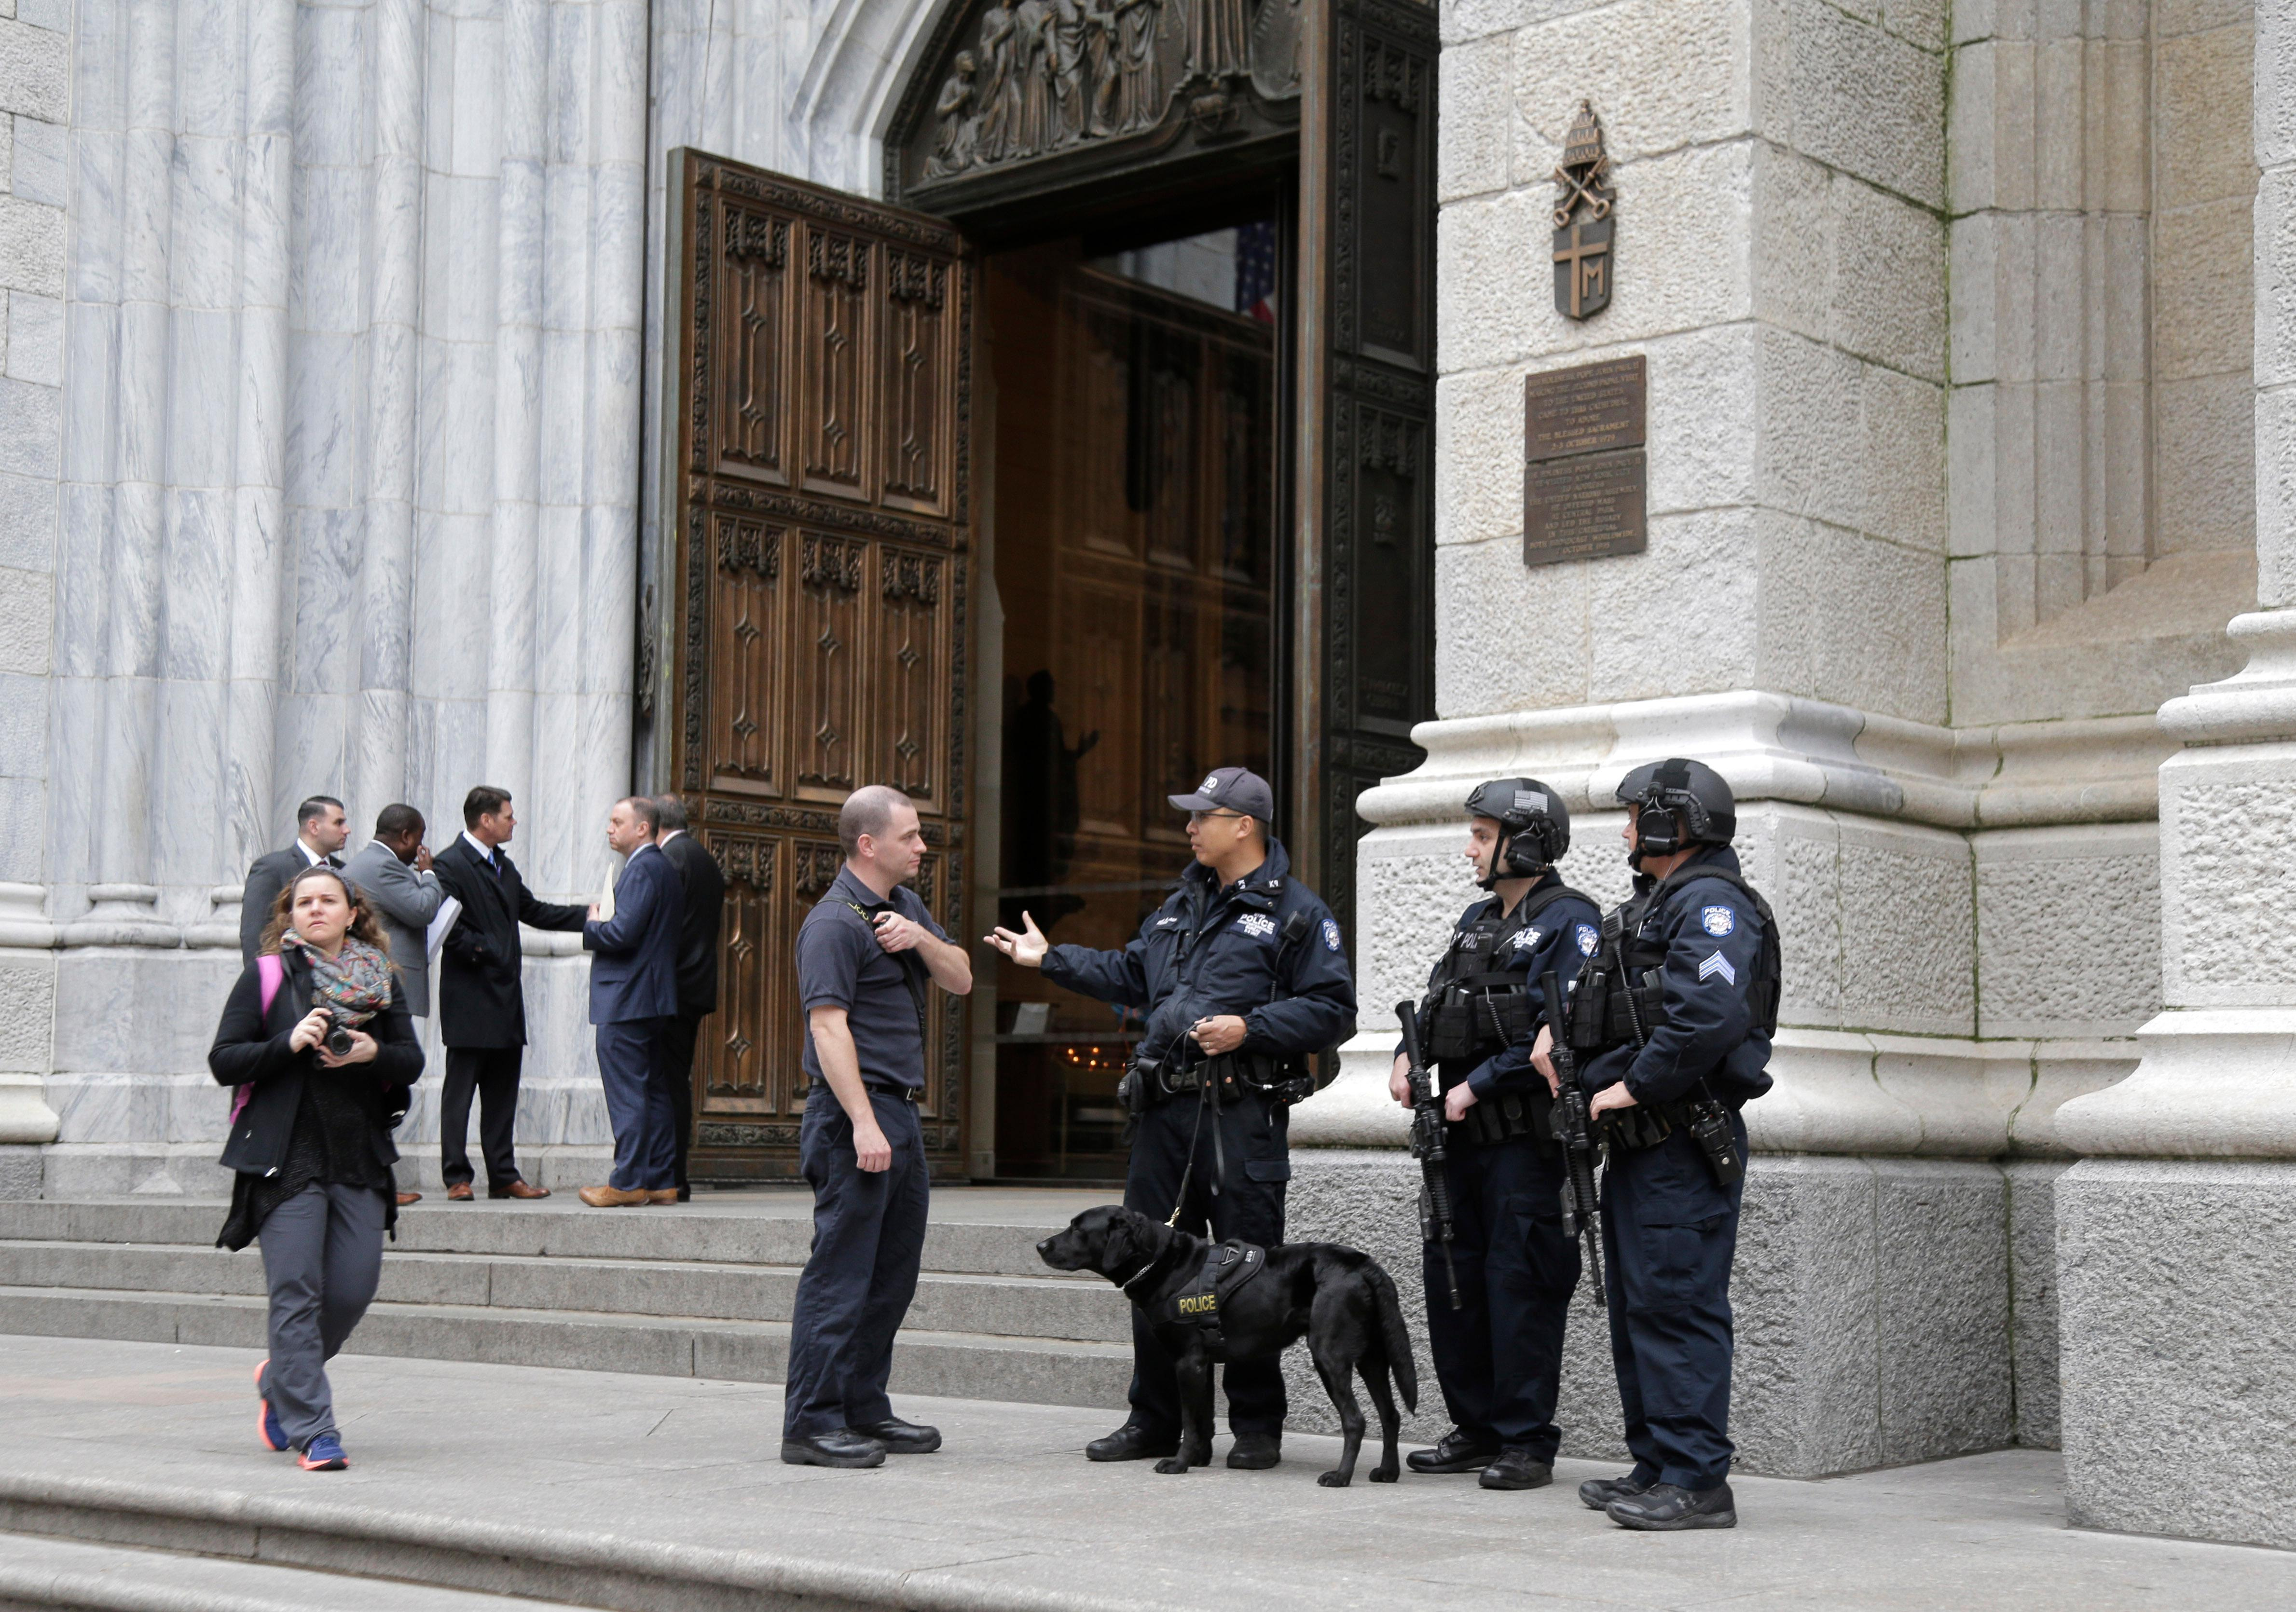 A larger-than-usual security presence is seen at St. Patrick's Cathedral in New York, Thursday, April 18, 2019. A New Jersey man was arrested Wednesday night, after entering the cathedral carrying two cans of gasoline, lighter fluid and butane lighters, the New York Police Department said, just days after flames ravaged the Notre Dame cathedral in Paris. (AP Photo/Seth Wenig)